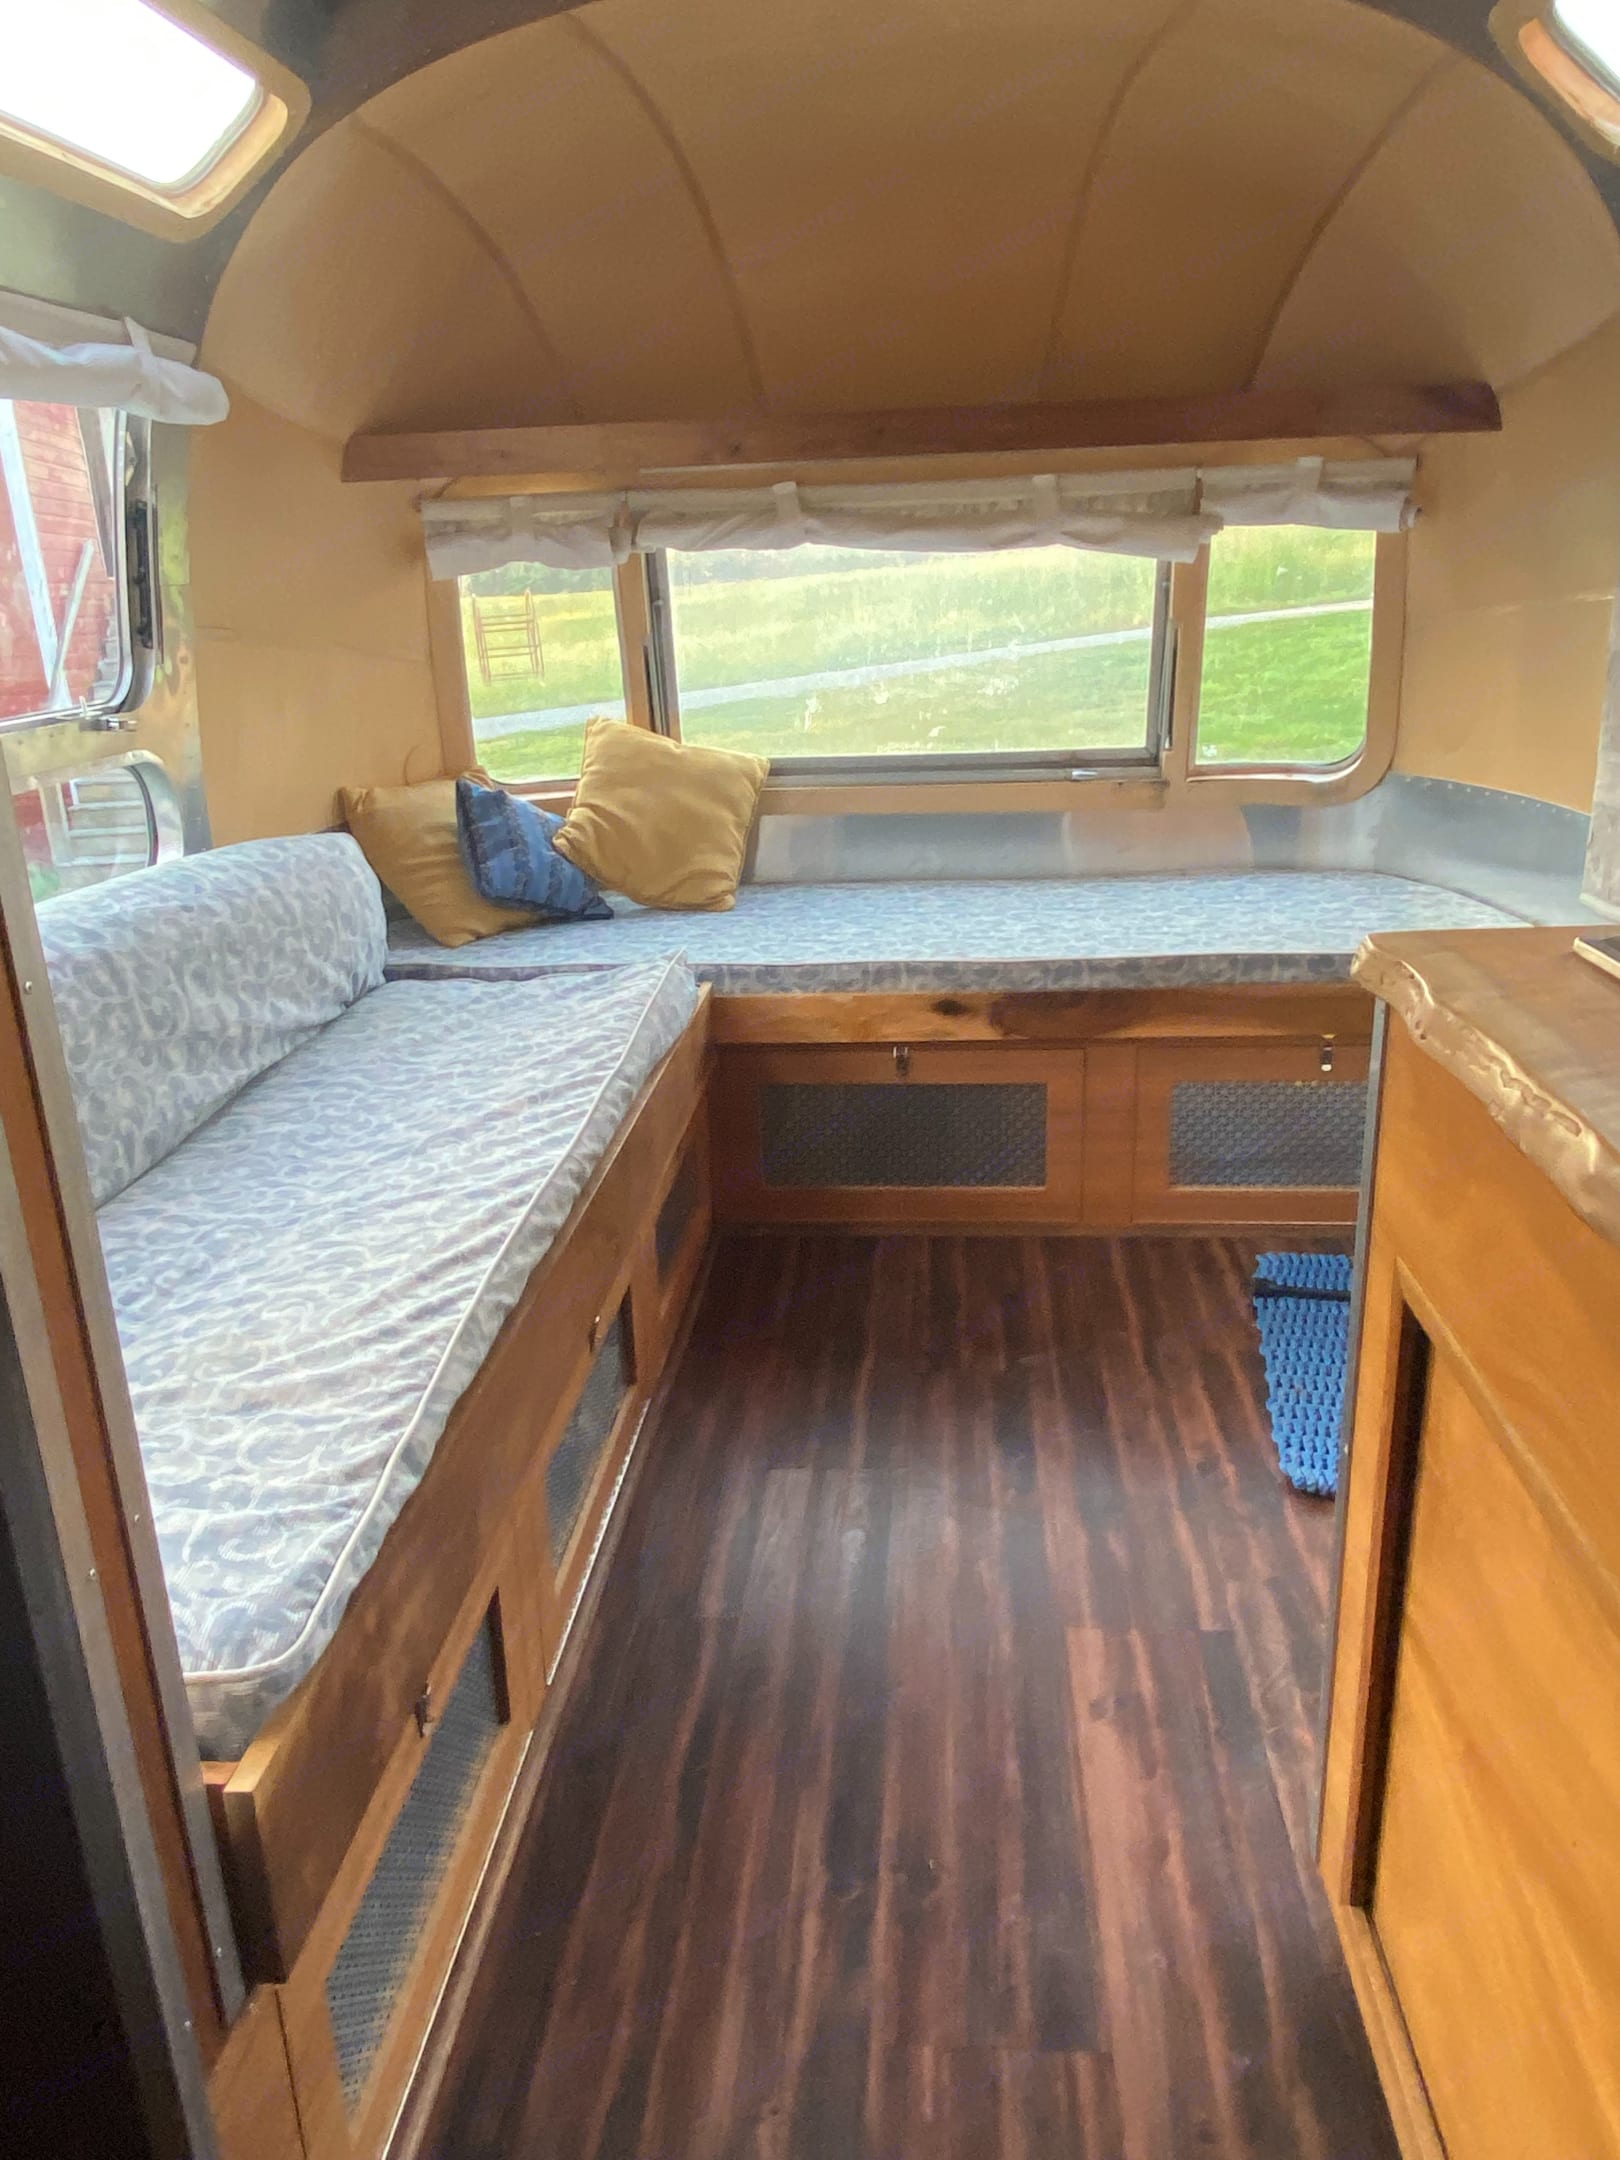 Couch folds into dbl bed. Airstream Ambassador 1972